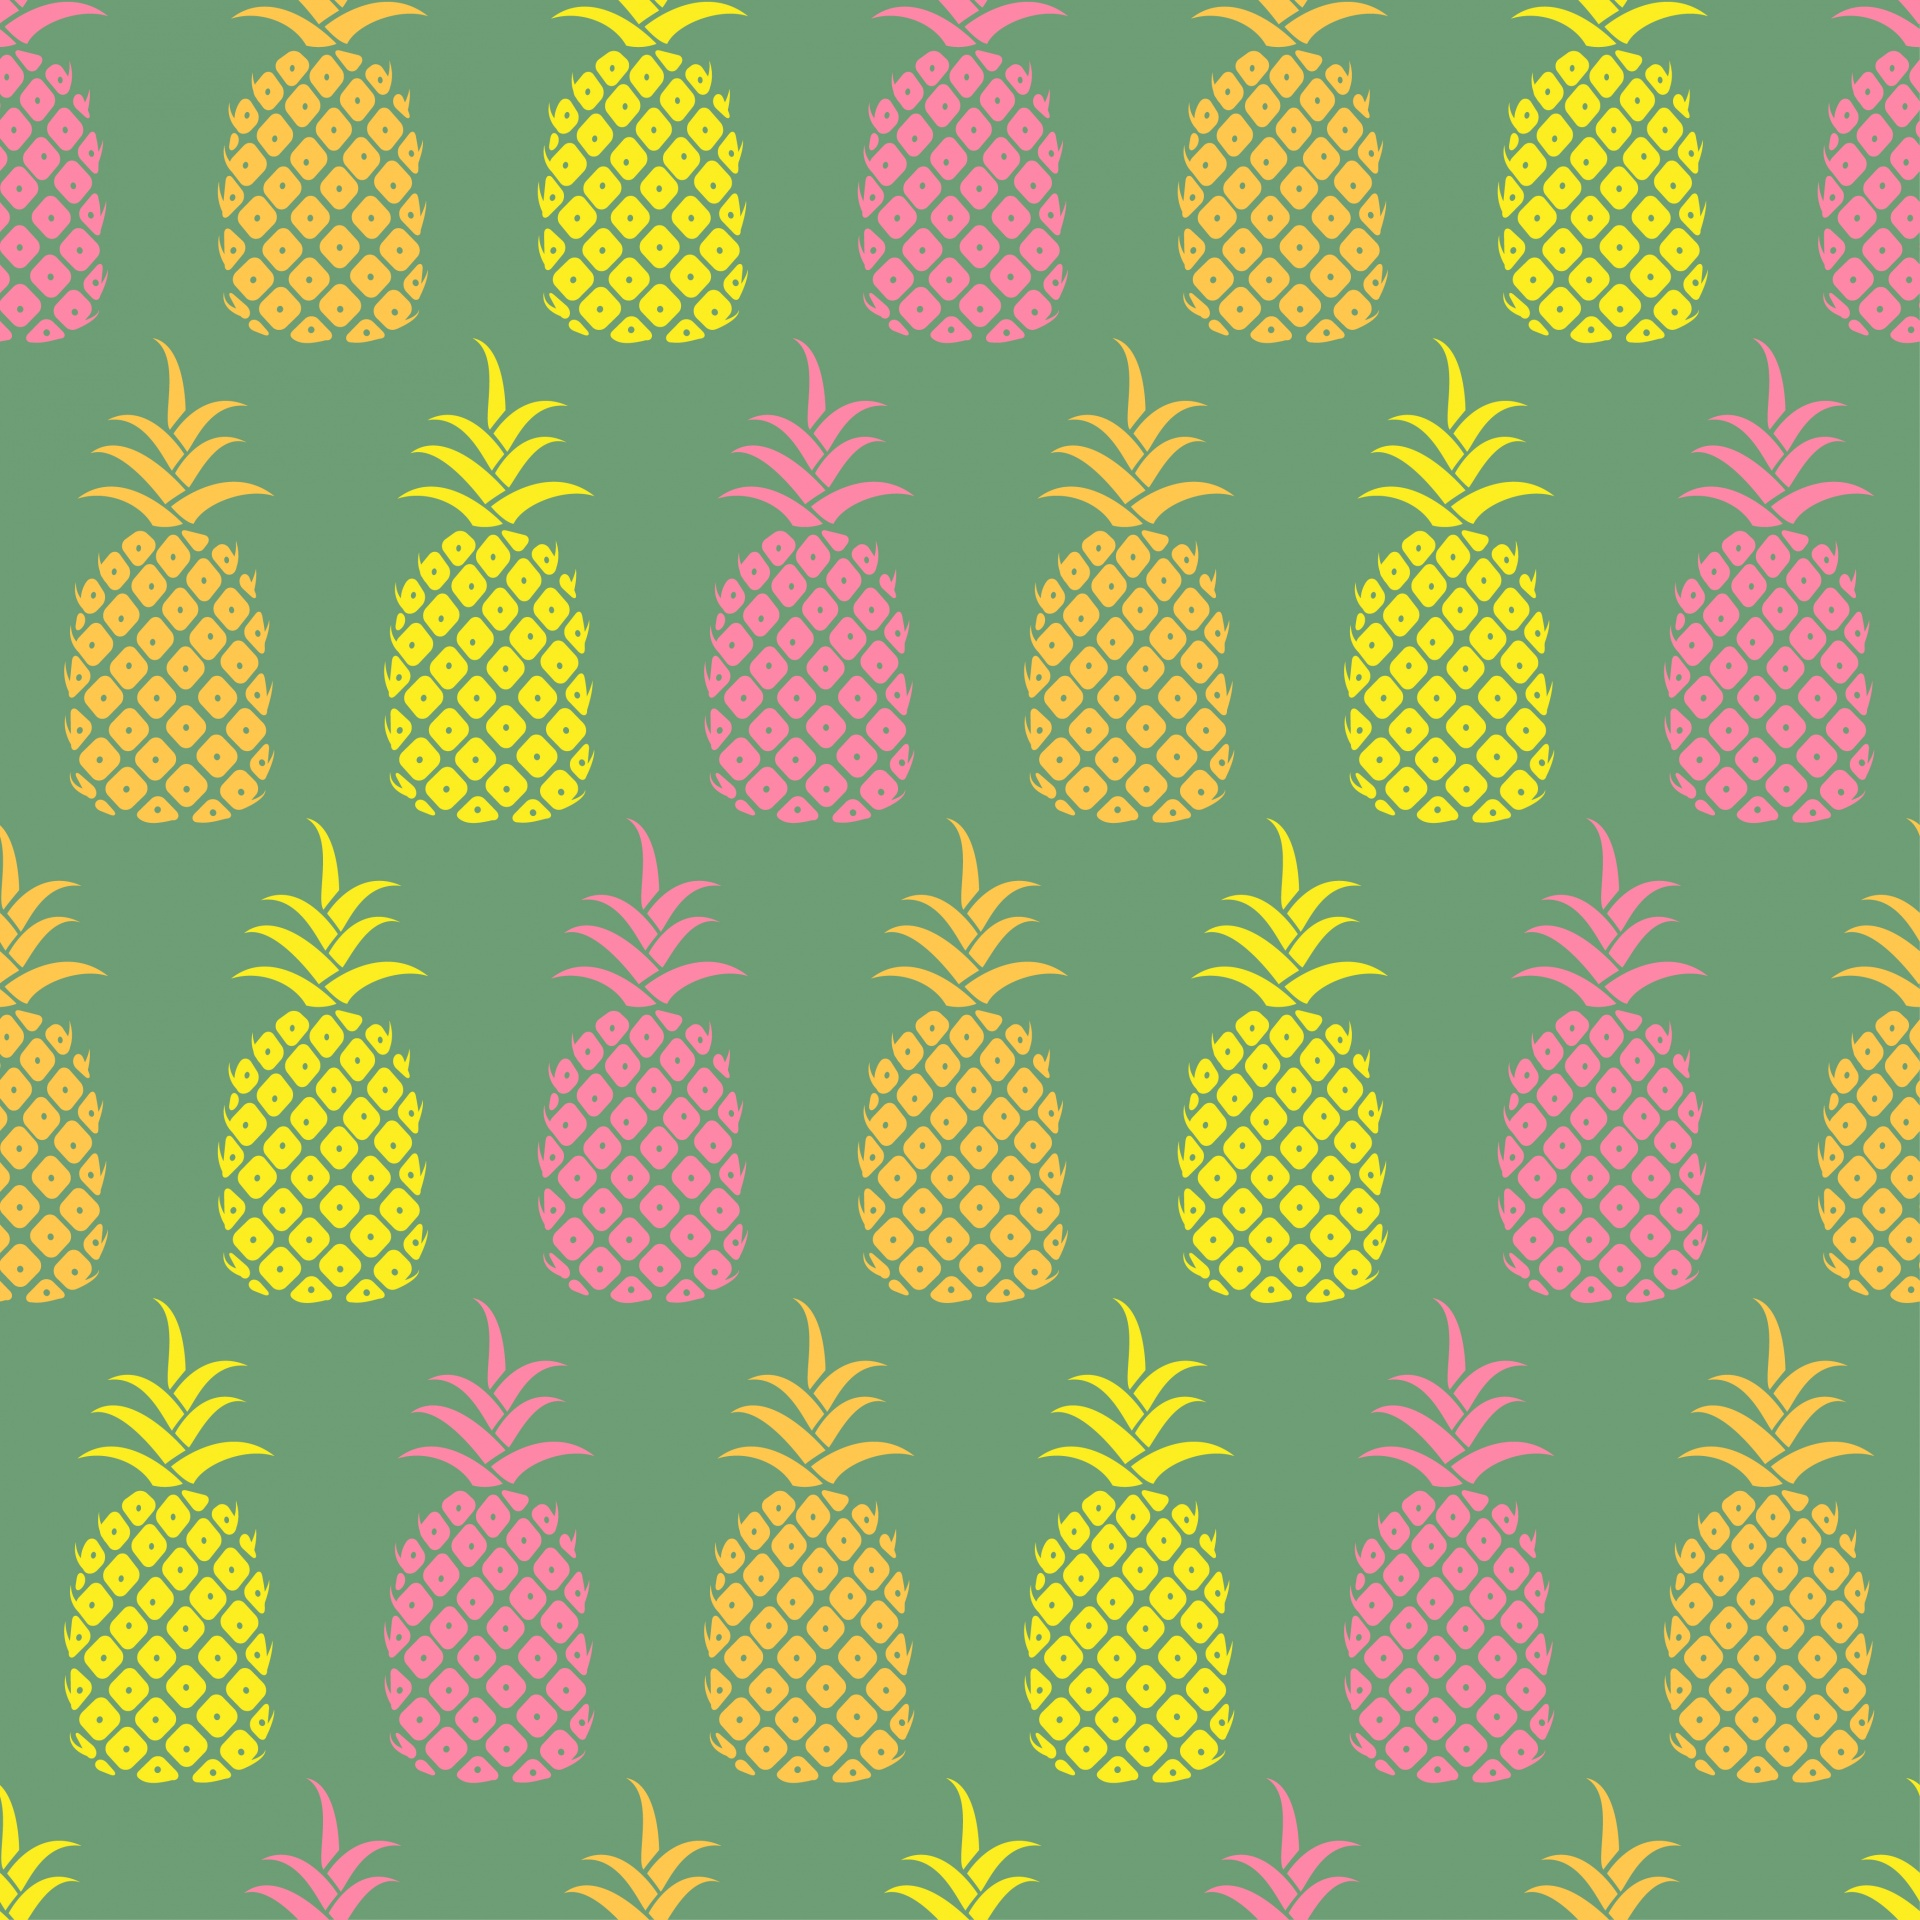 Pineapple Wallpaper Pattern Free Stock Photo - Public Domain Pictures